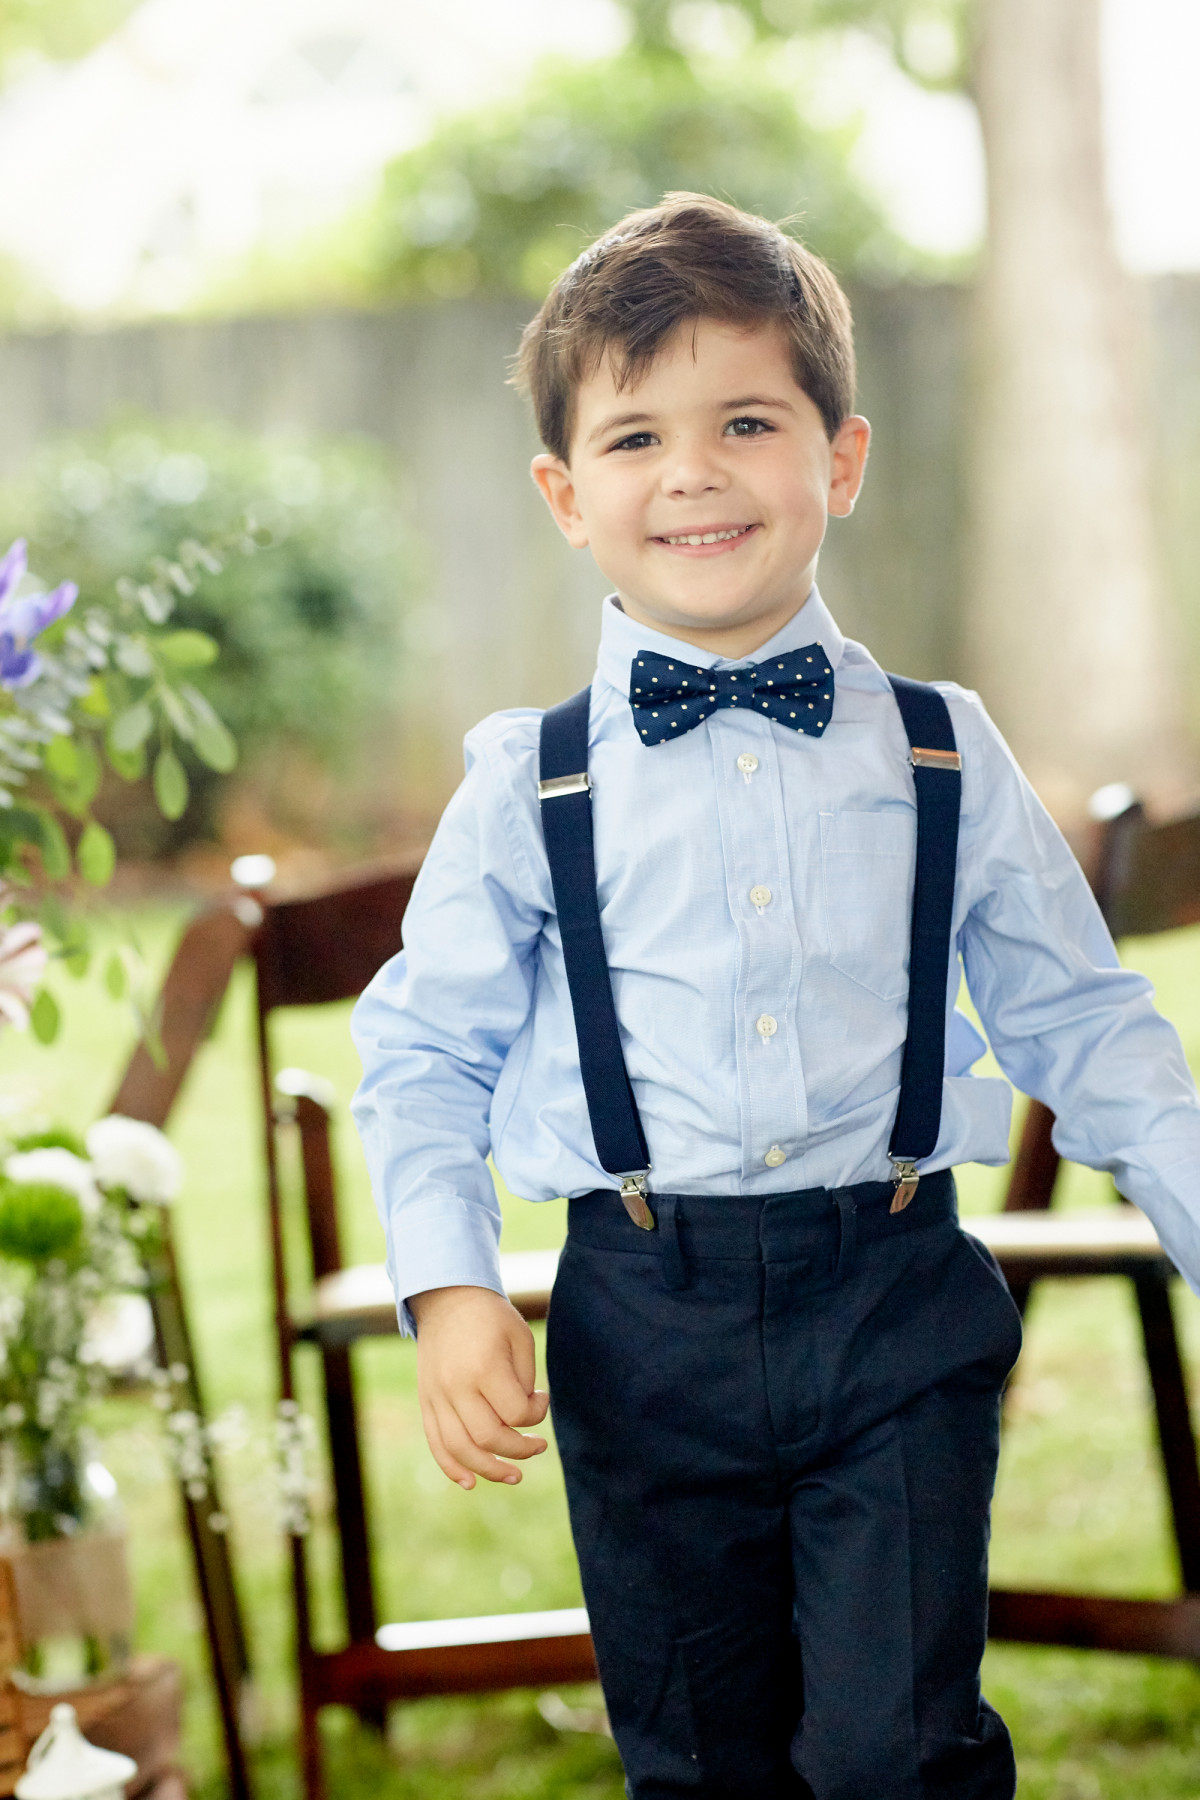 Editorial photo of a young boy dressed up in suspenders and a bow tie